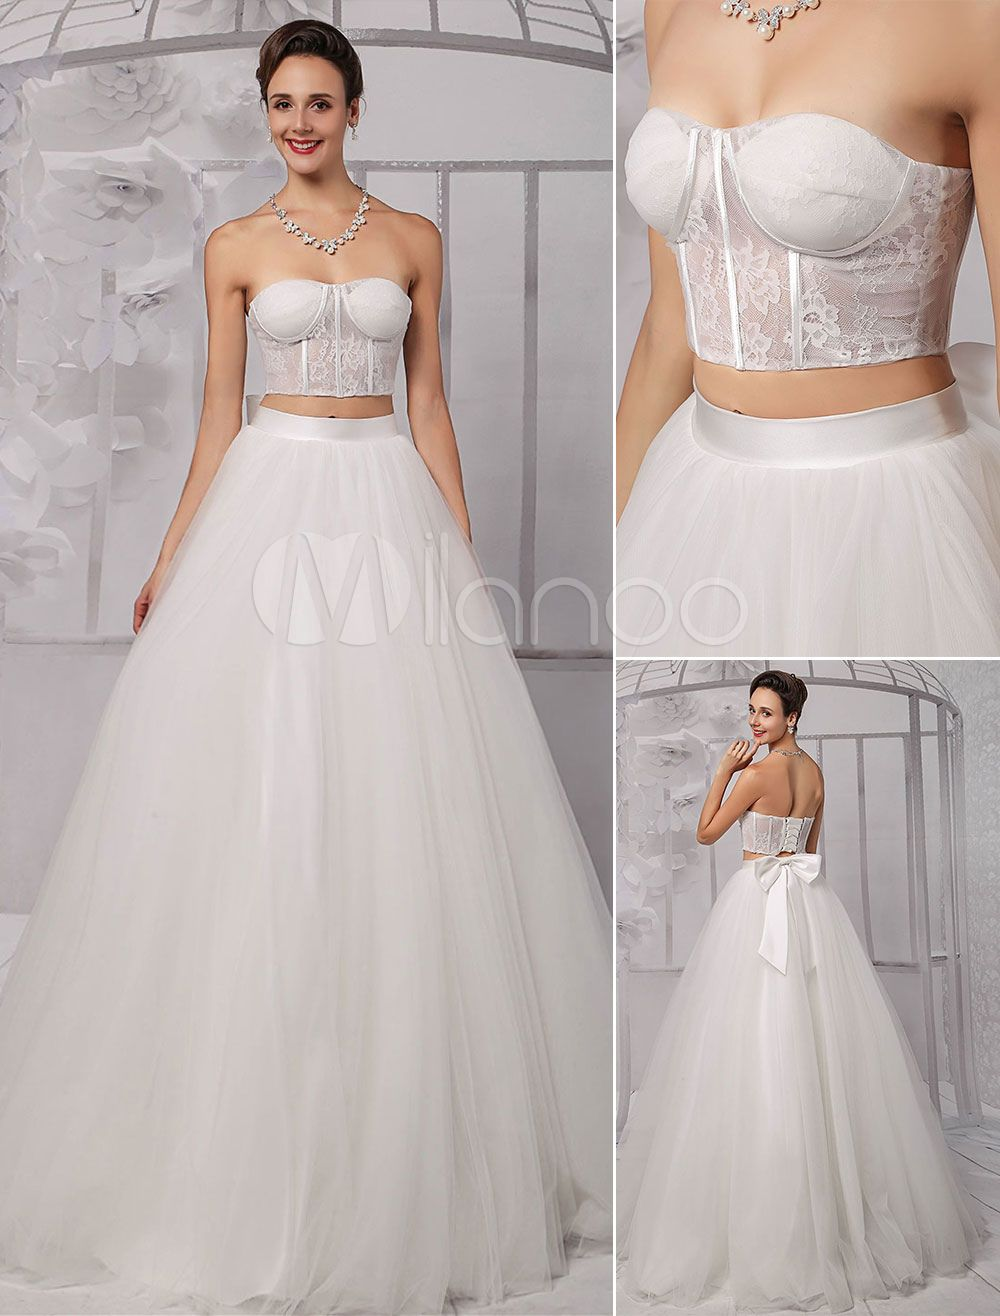 wedding dress corset top Two Pieces Strapless Lace Corset Crop Top Ball Gown Wedding Dress With Tulle Skirt